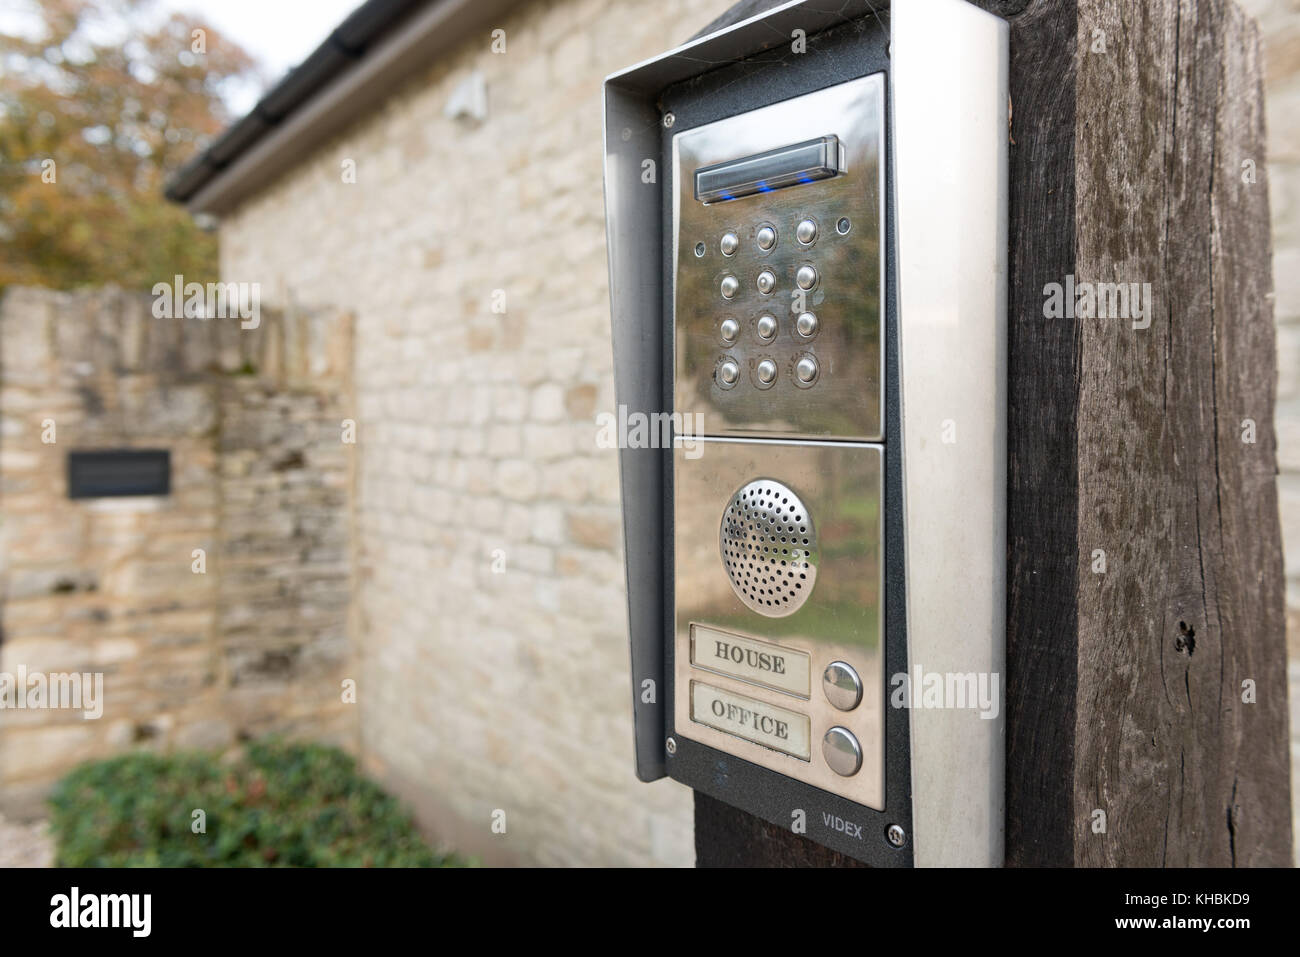 An entry code keypad controlling the entrance to a gated home and office - Stock Image